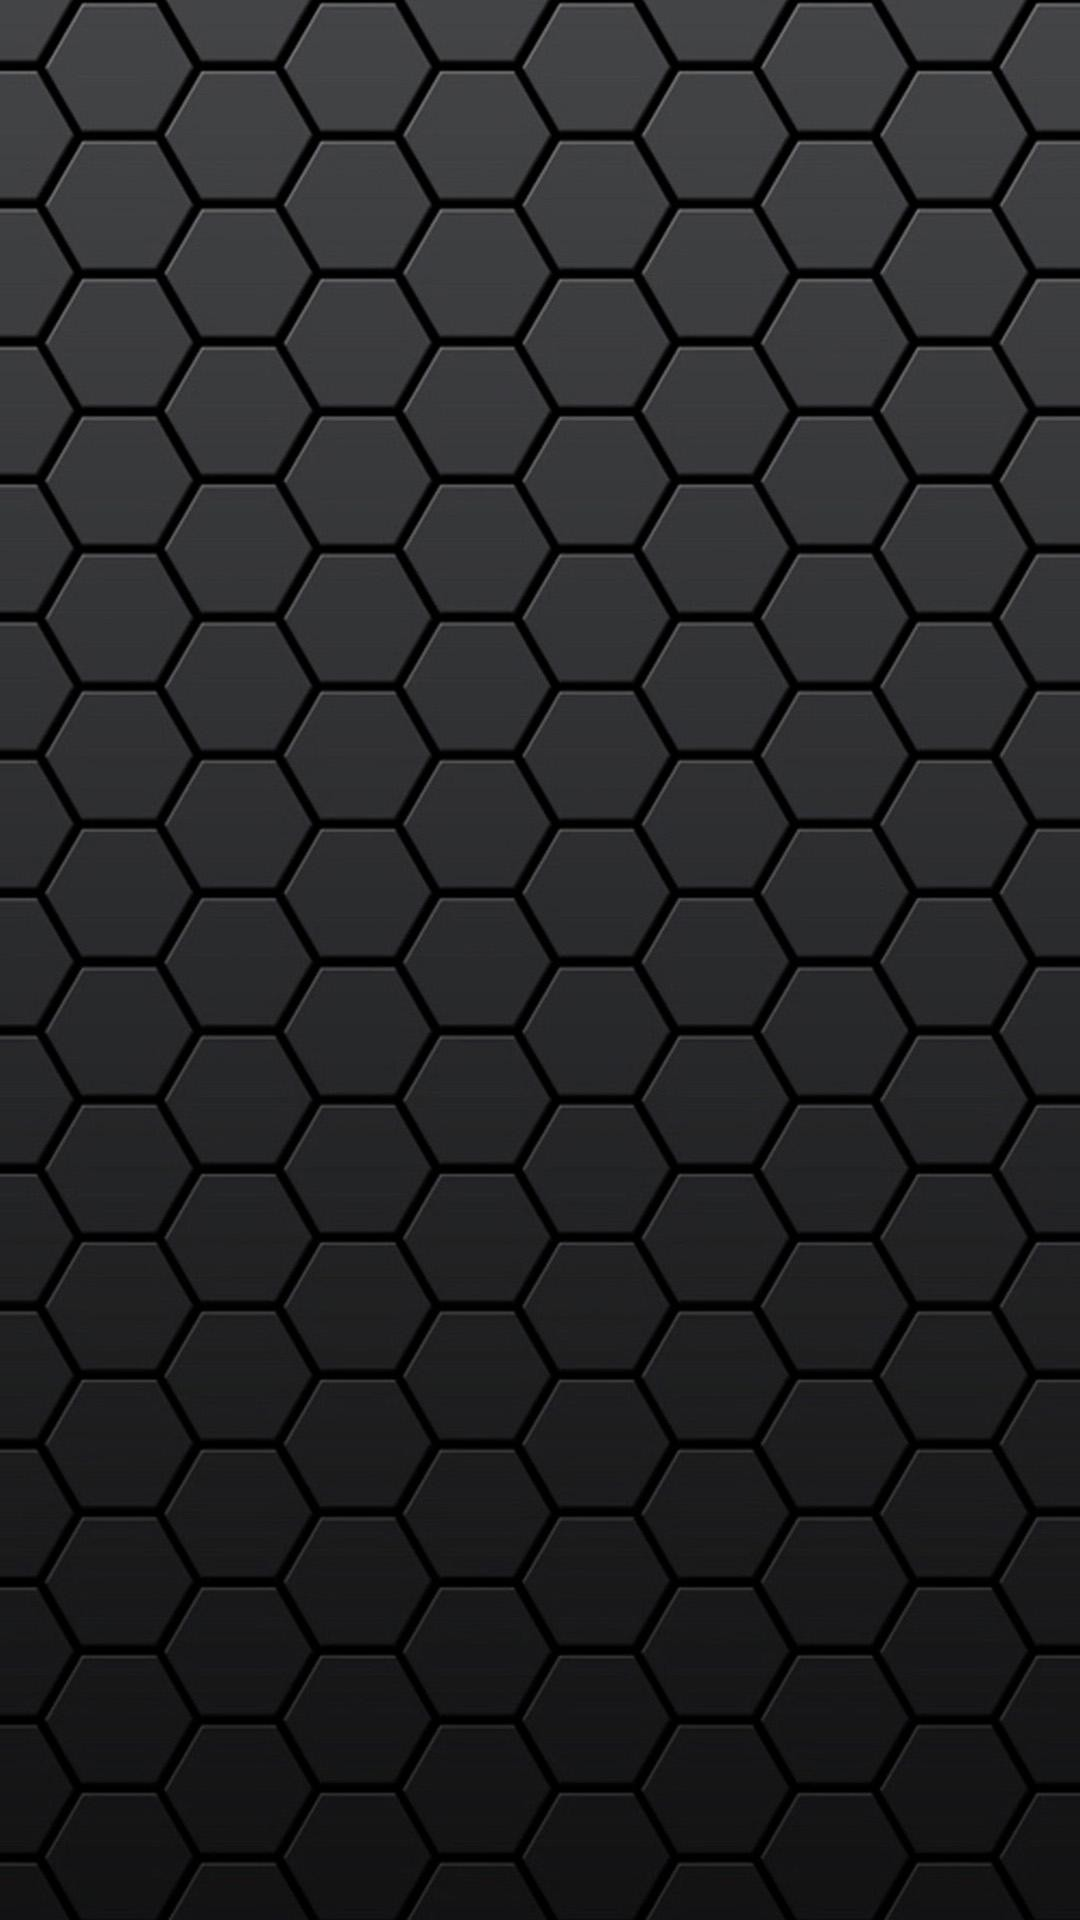 … carbon fiber iphone wallpaper hd page 2 of 3 wallpaper wiki …